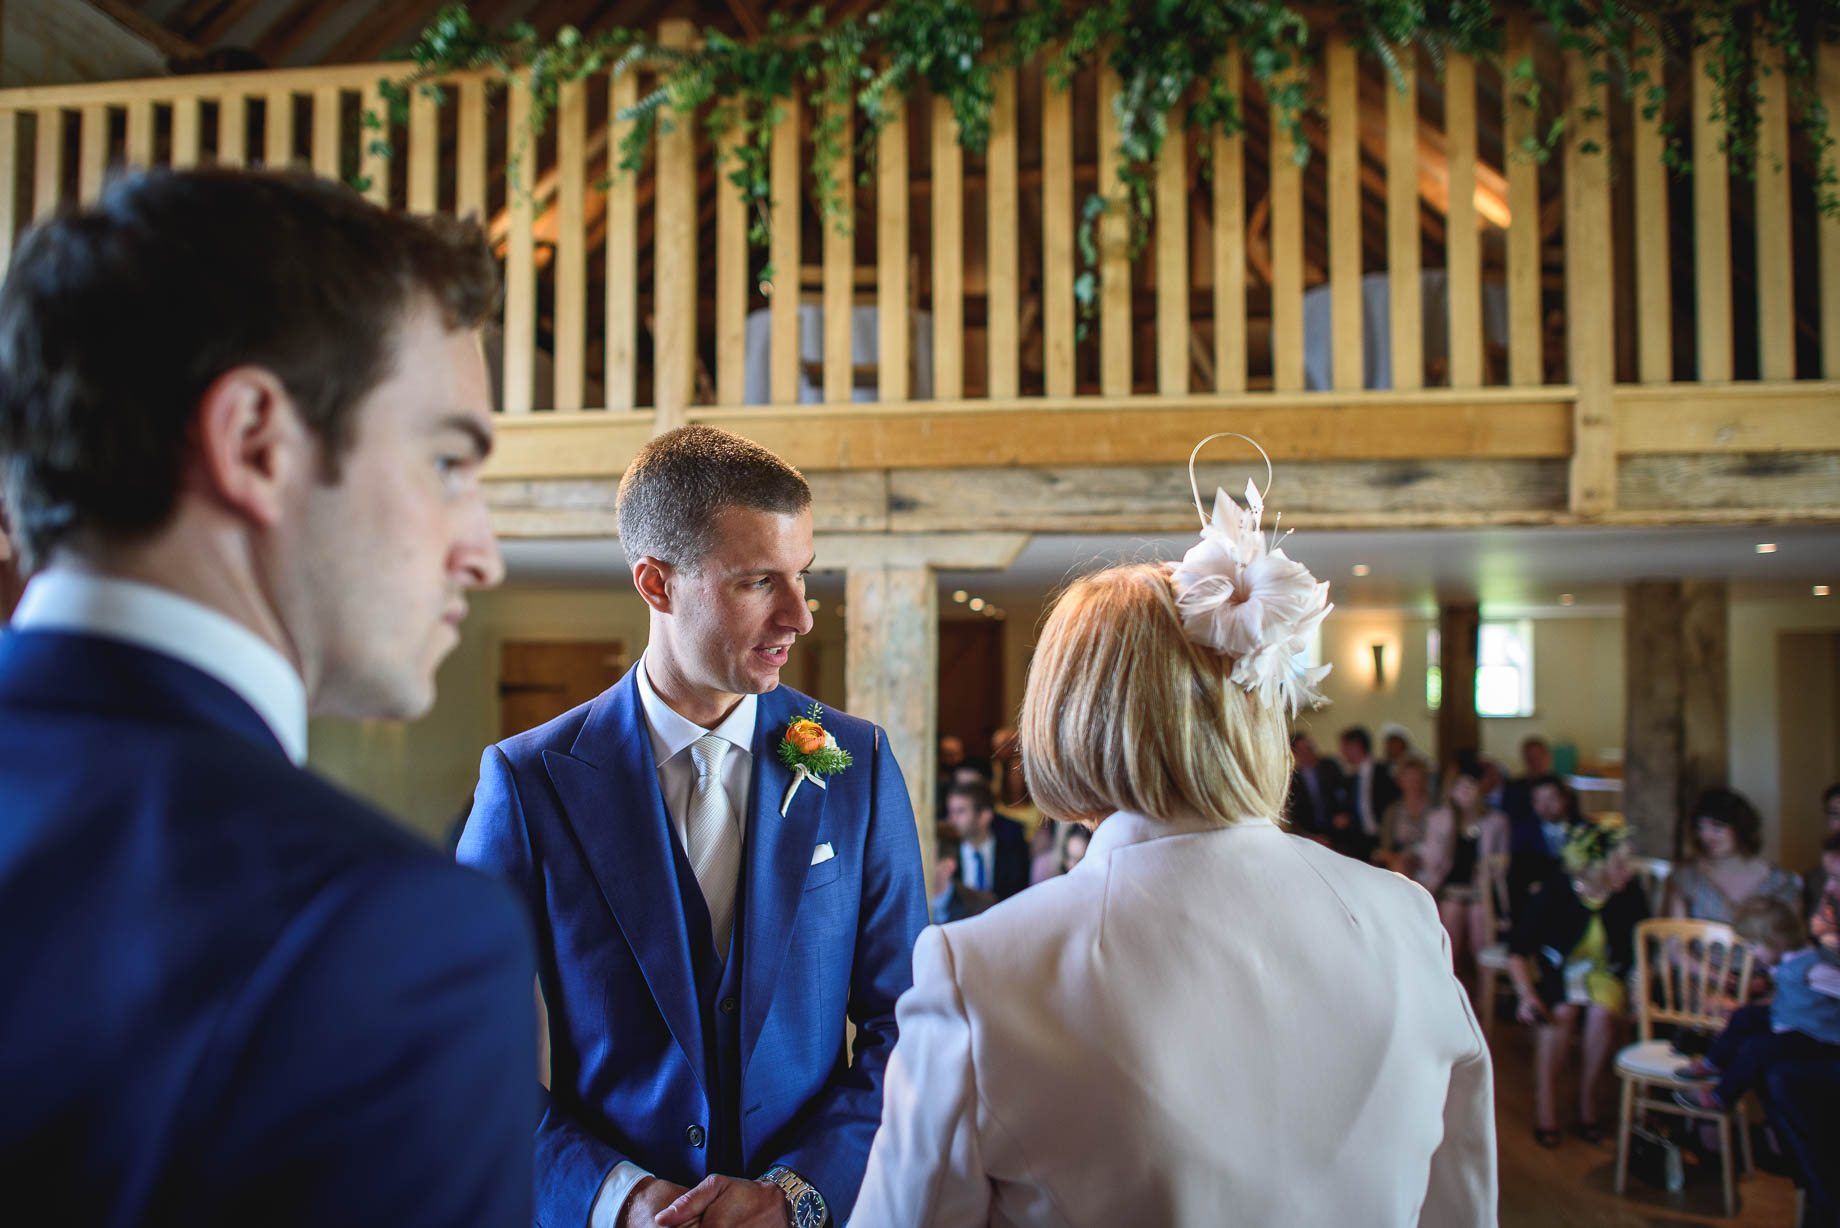 Bury Court Barn wedding photography by Guy Collier - Jo and Jamie (55 of 160)